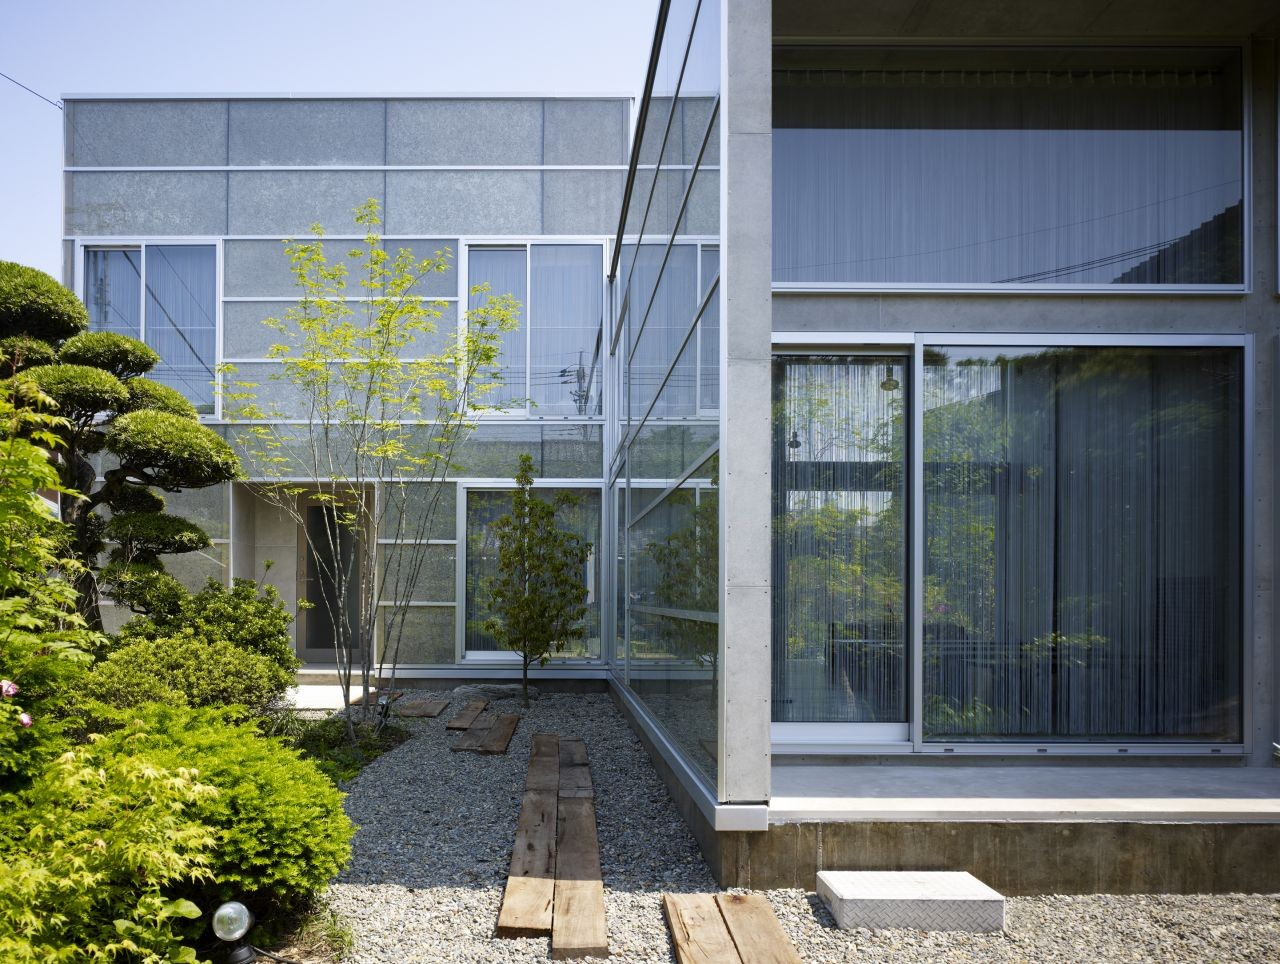 Garden House / Kochi Architect's Studio, © Daichi Ano